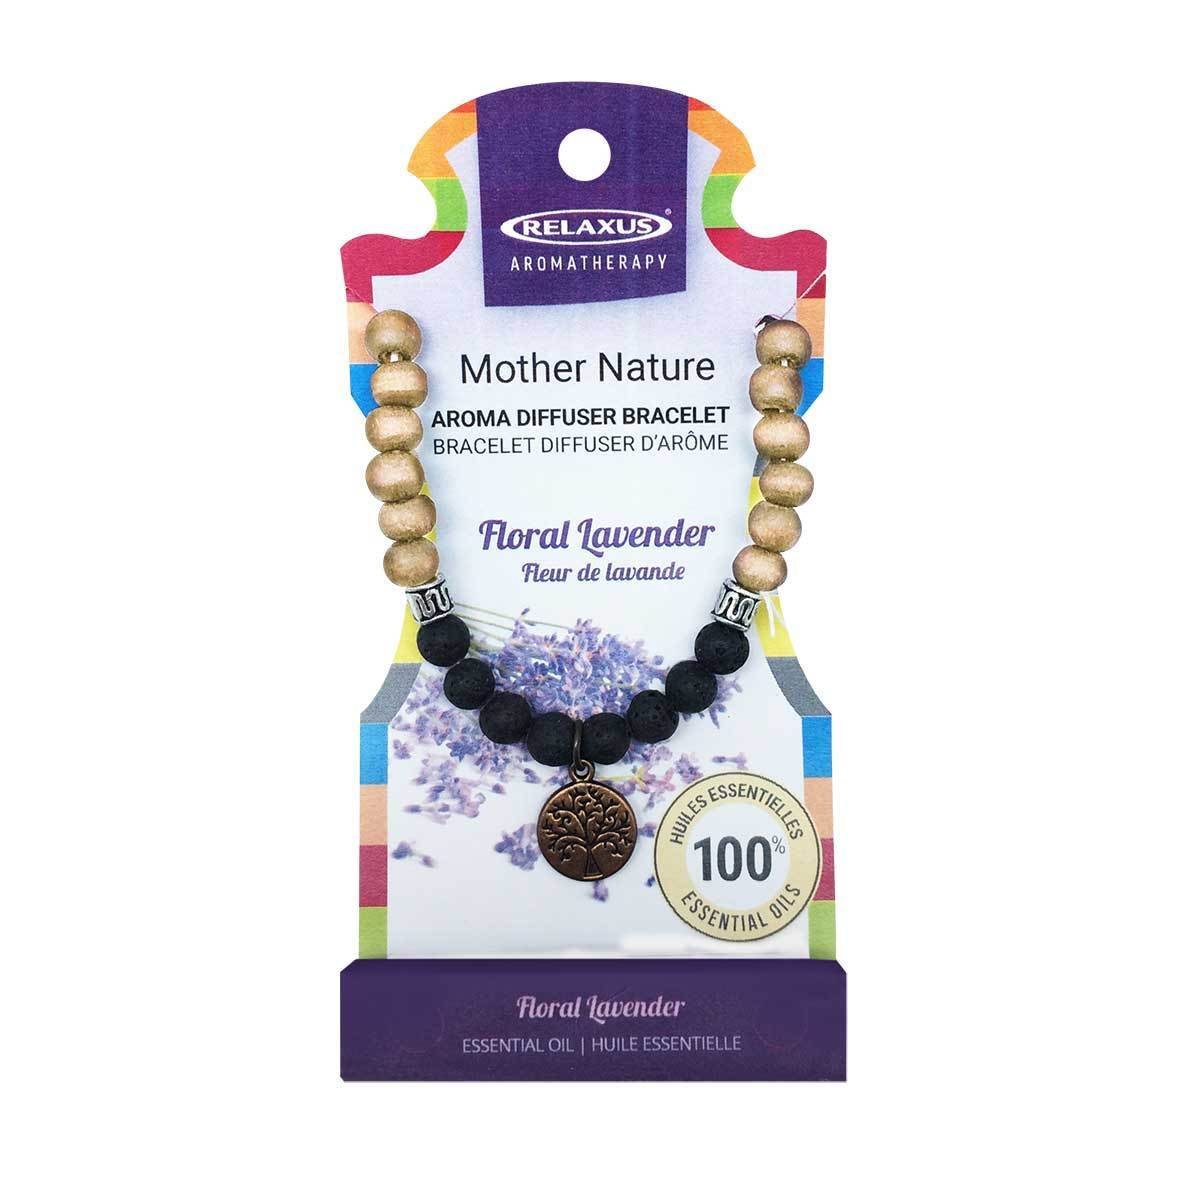 MOTHER NATURE DIFUSER BRACELET FLORAL LAVENDER